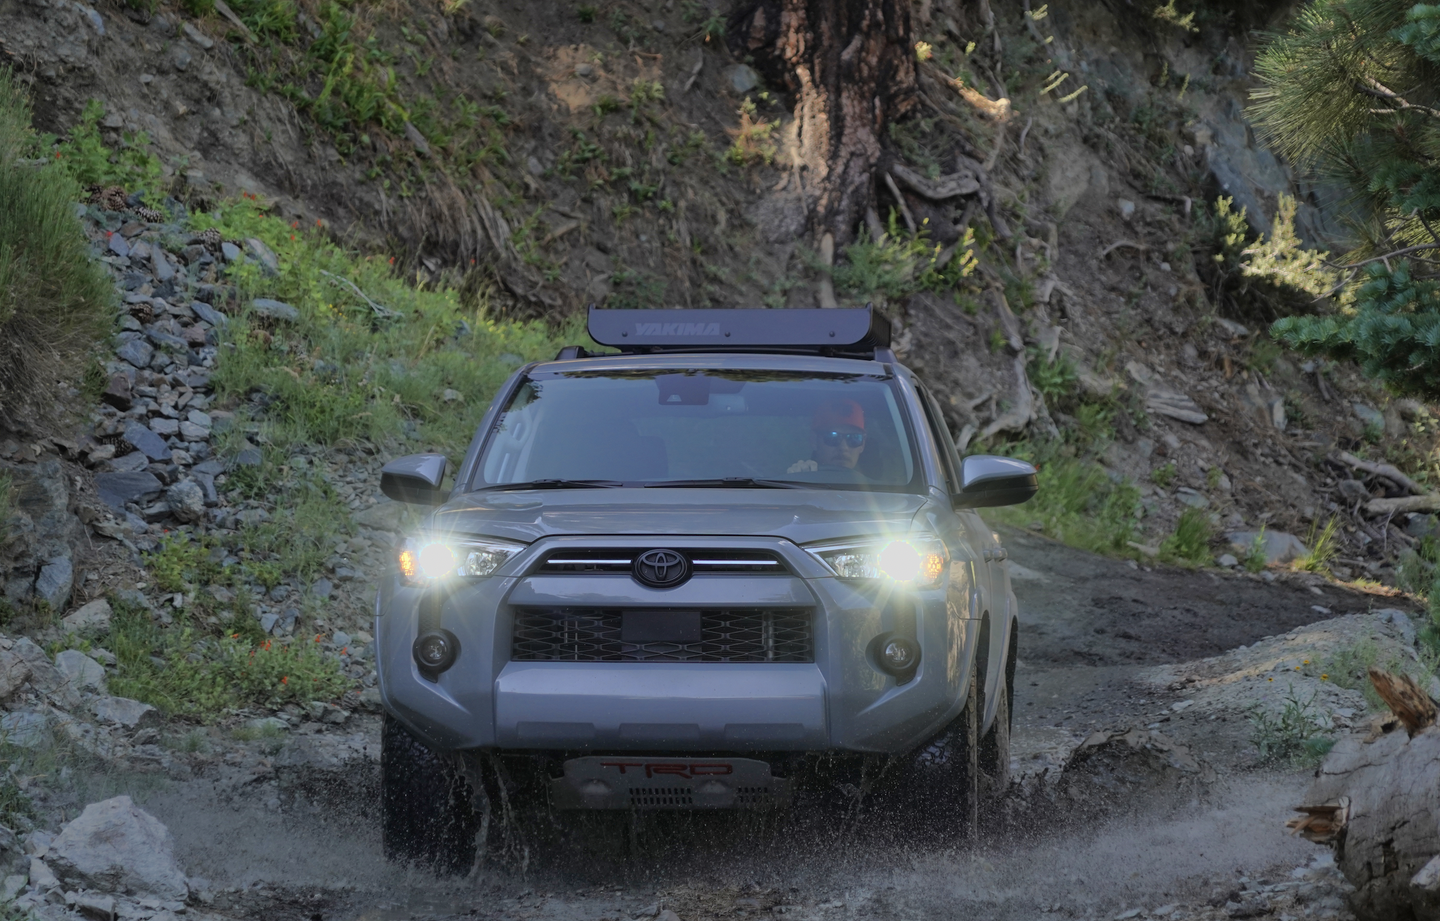 The 4Runner is off-road capable.